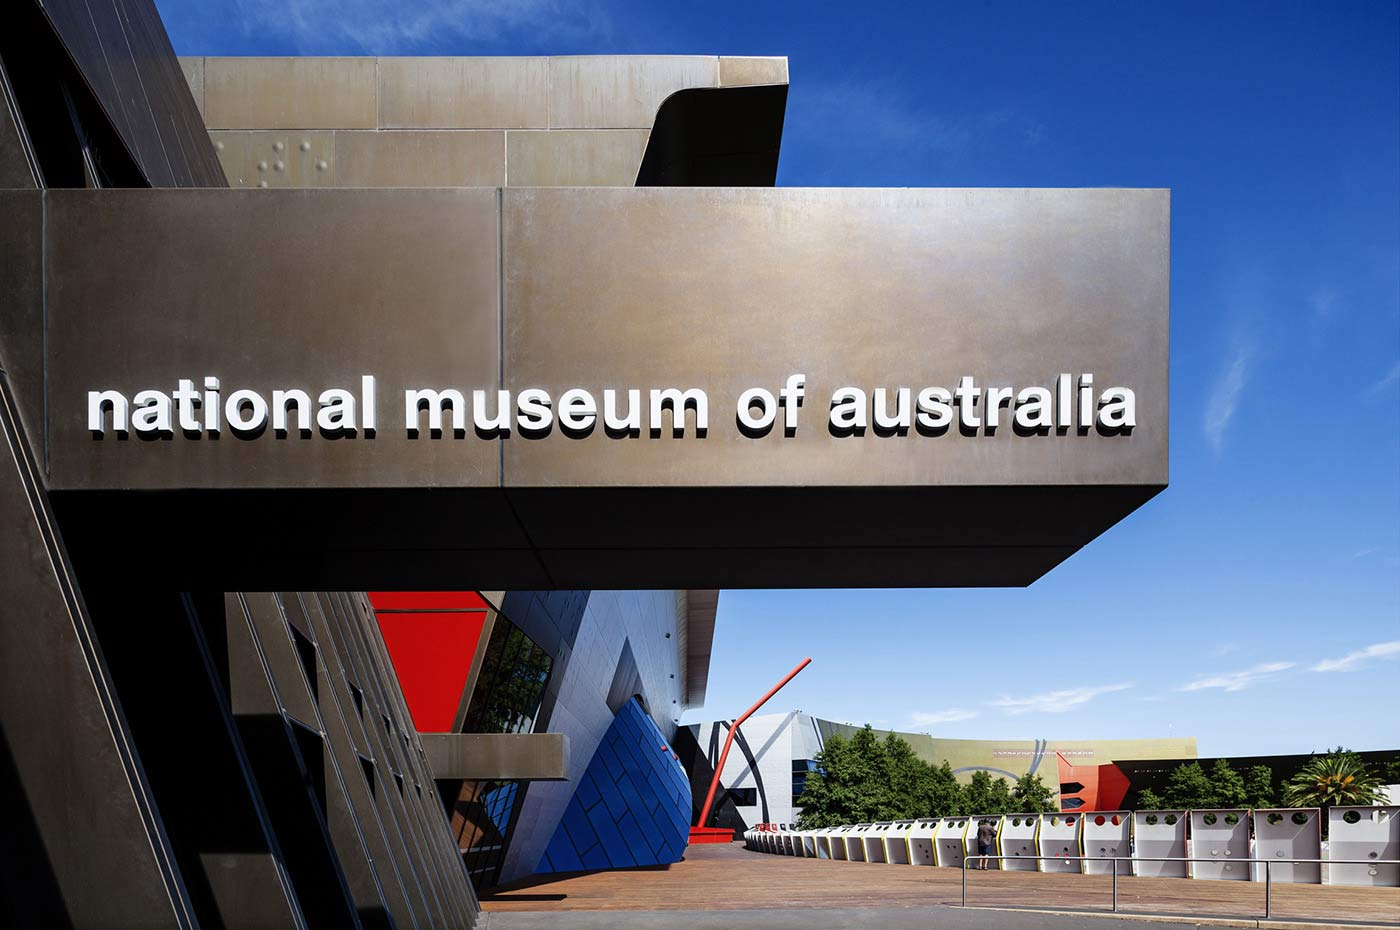 A view of the Museum's entrance with a large sign which spells 'National Museum of Australia' featuring above.